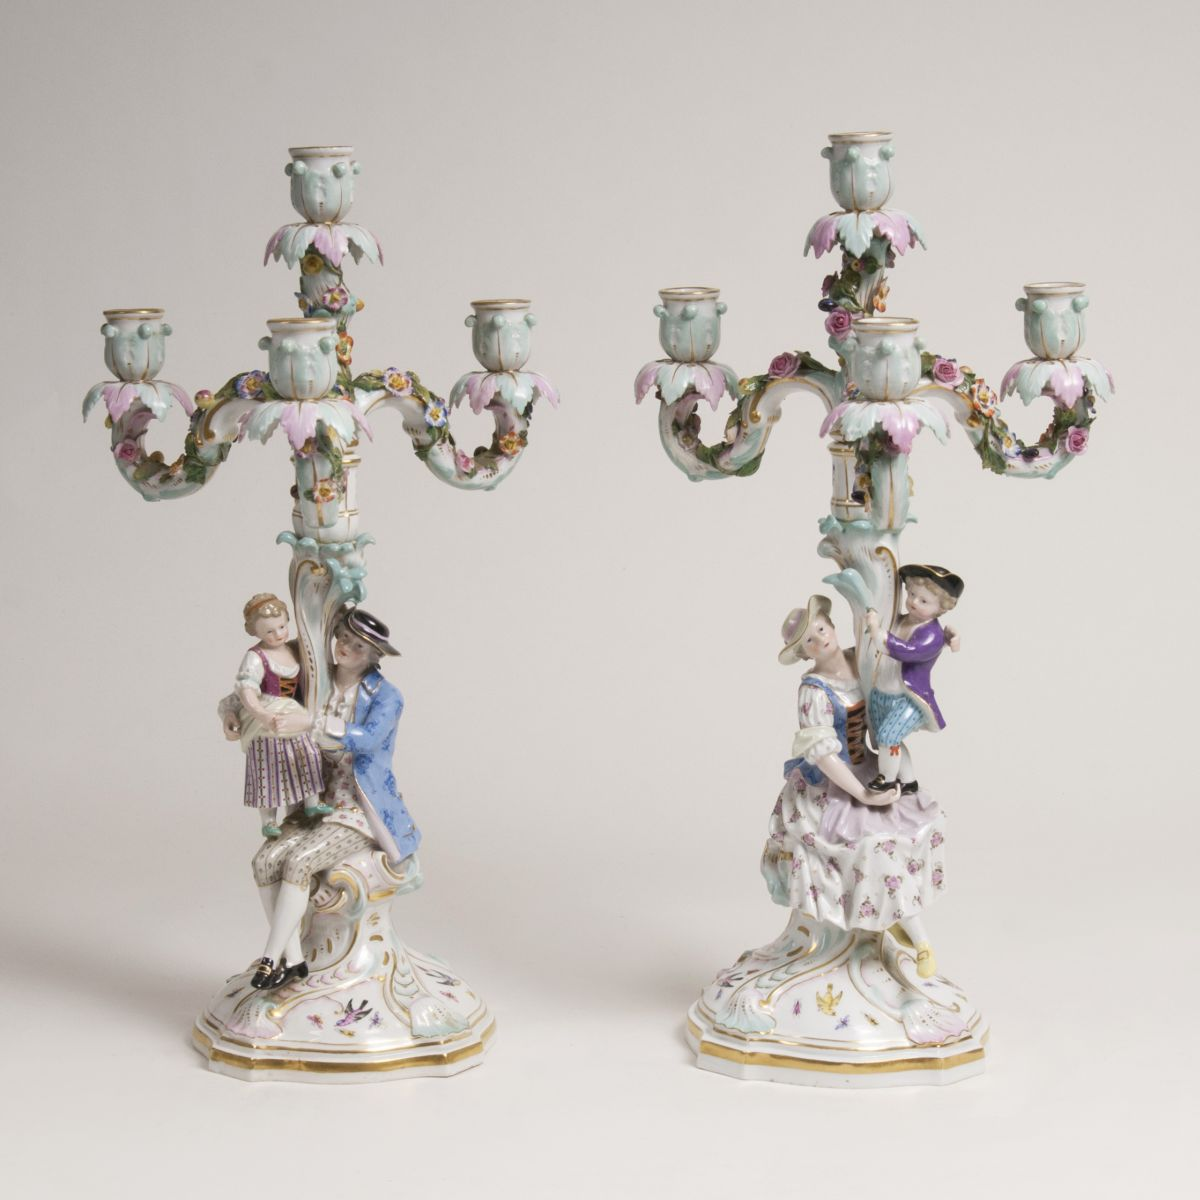 A Pair of Large 'Four-armed Figural Chandeliers 'Mother and Son' and 'Father and Daughter'